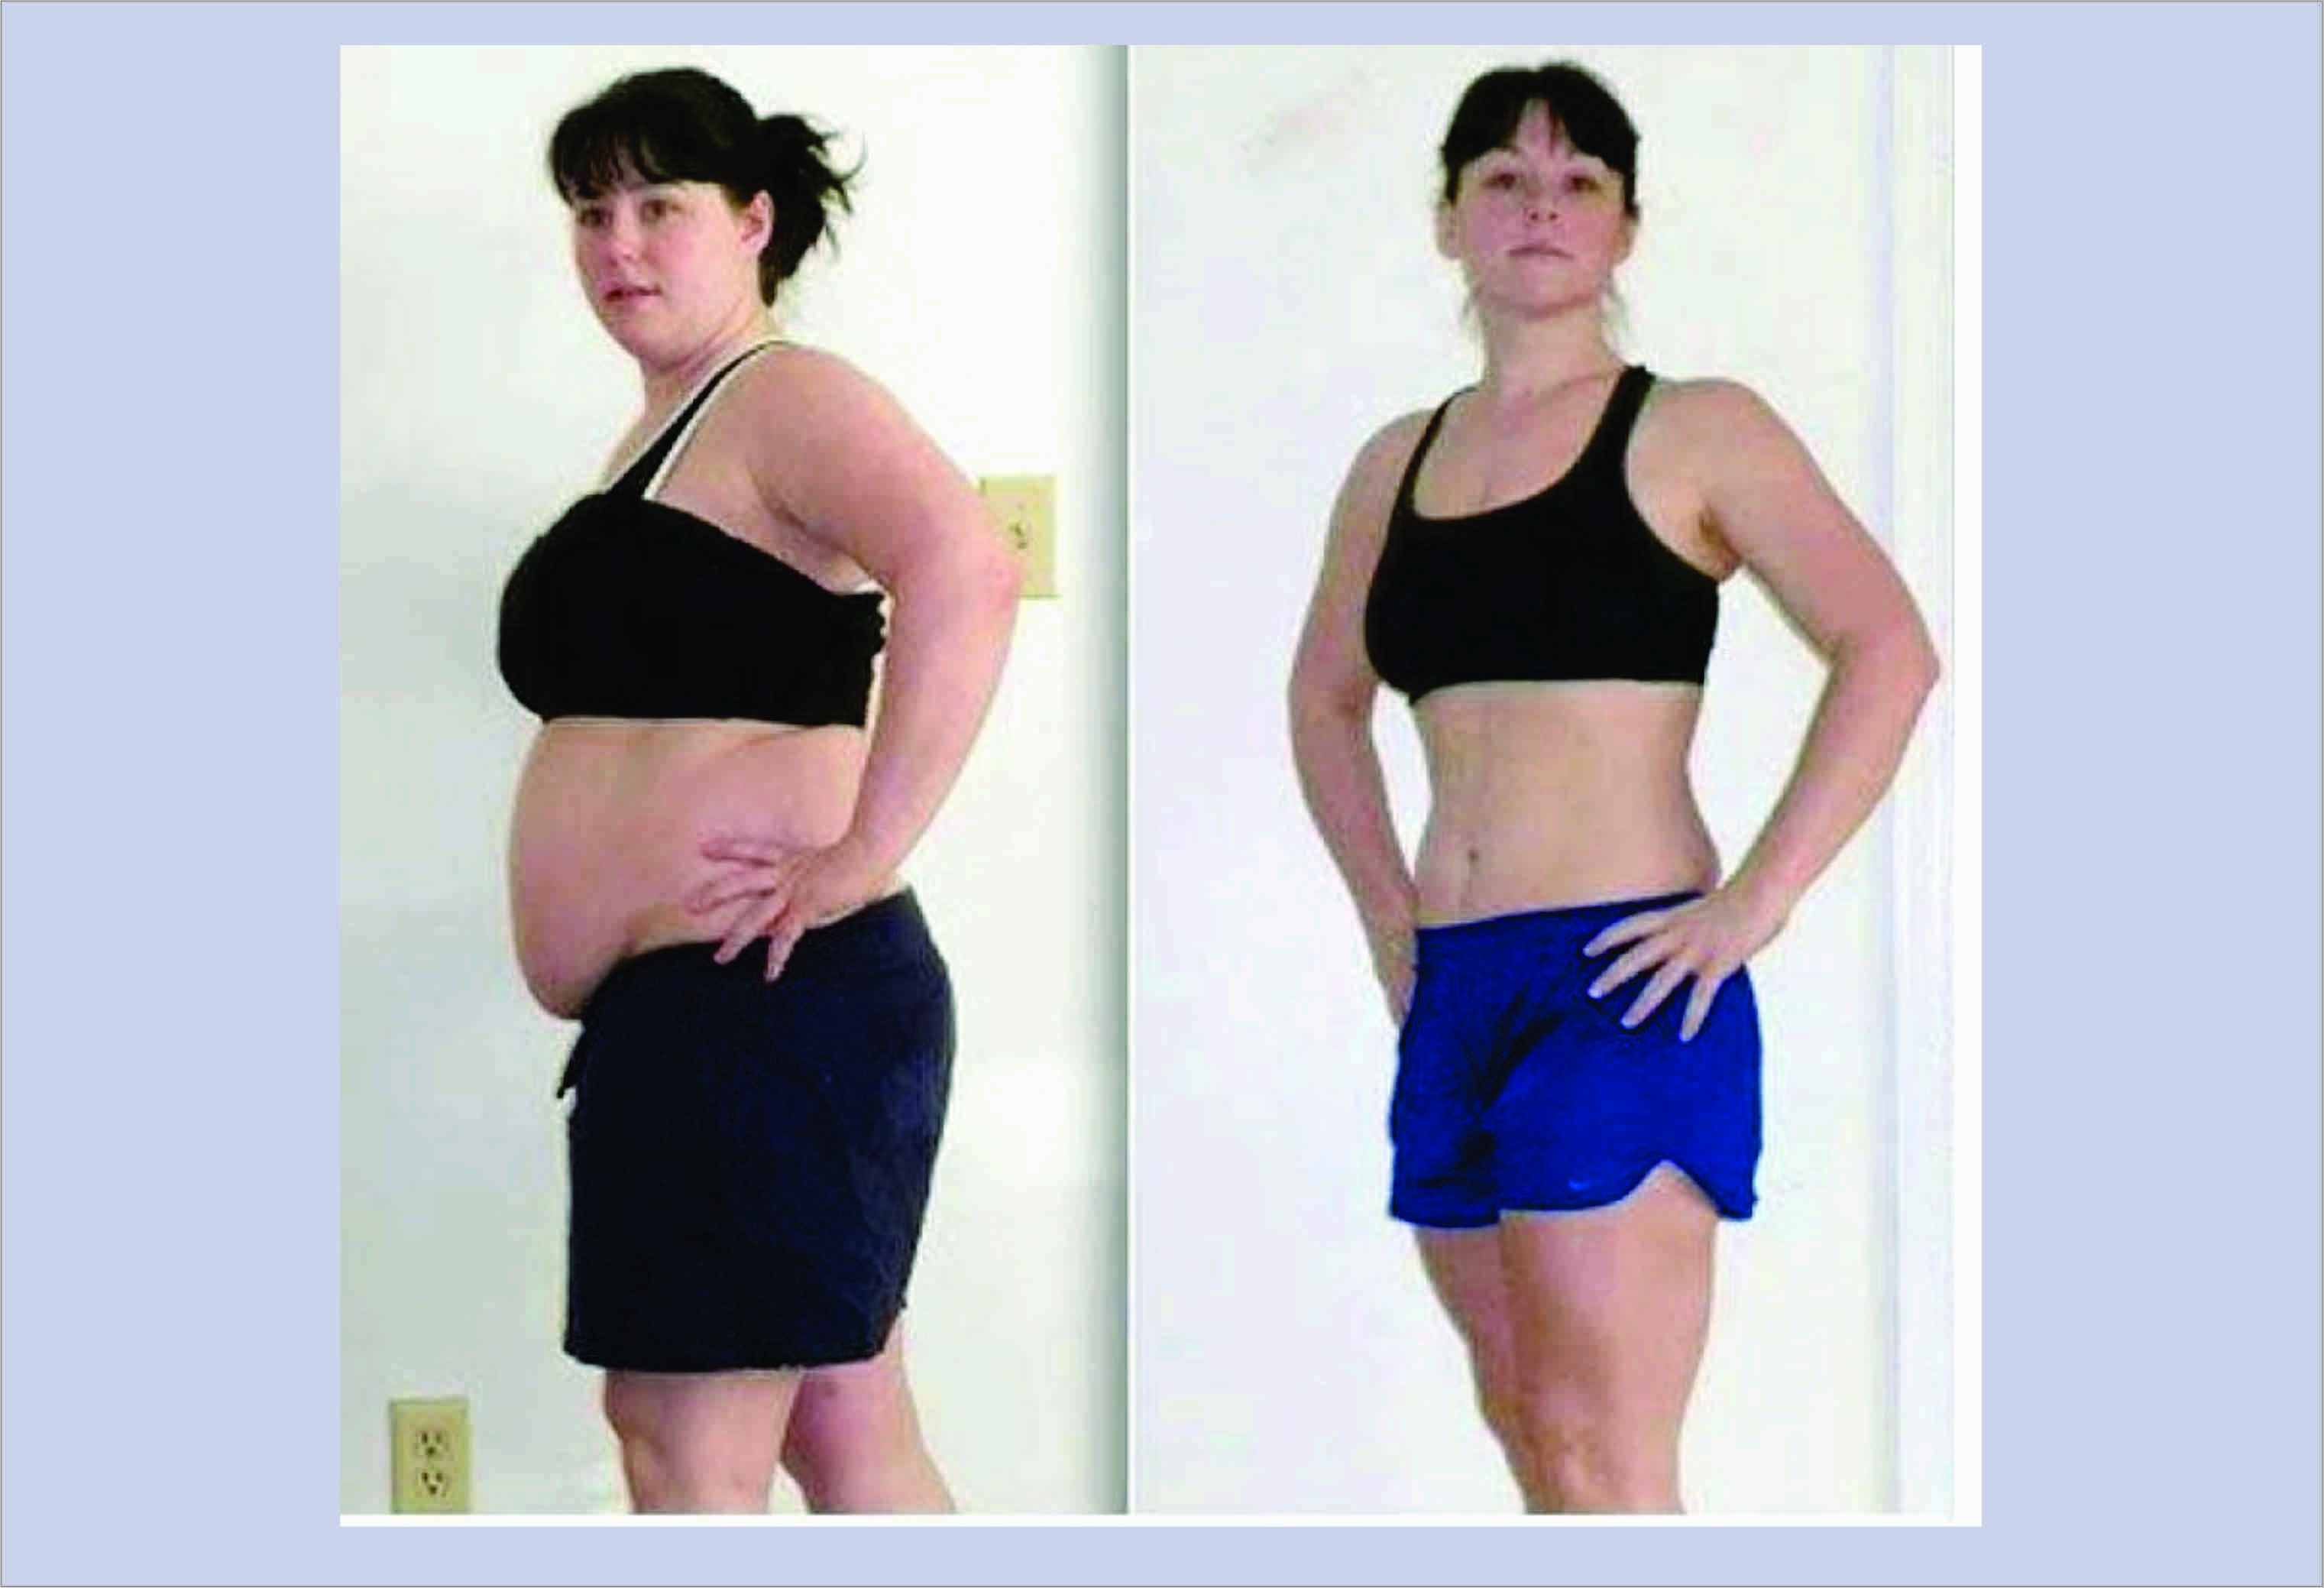 To reduce breast fat photo 1